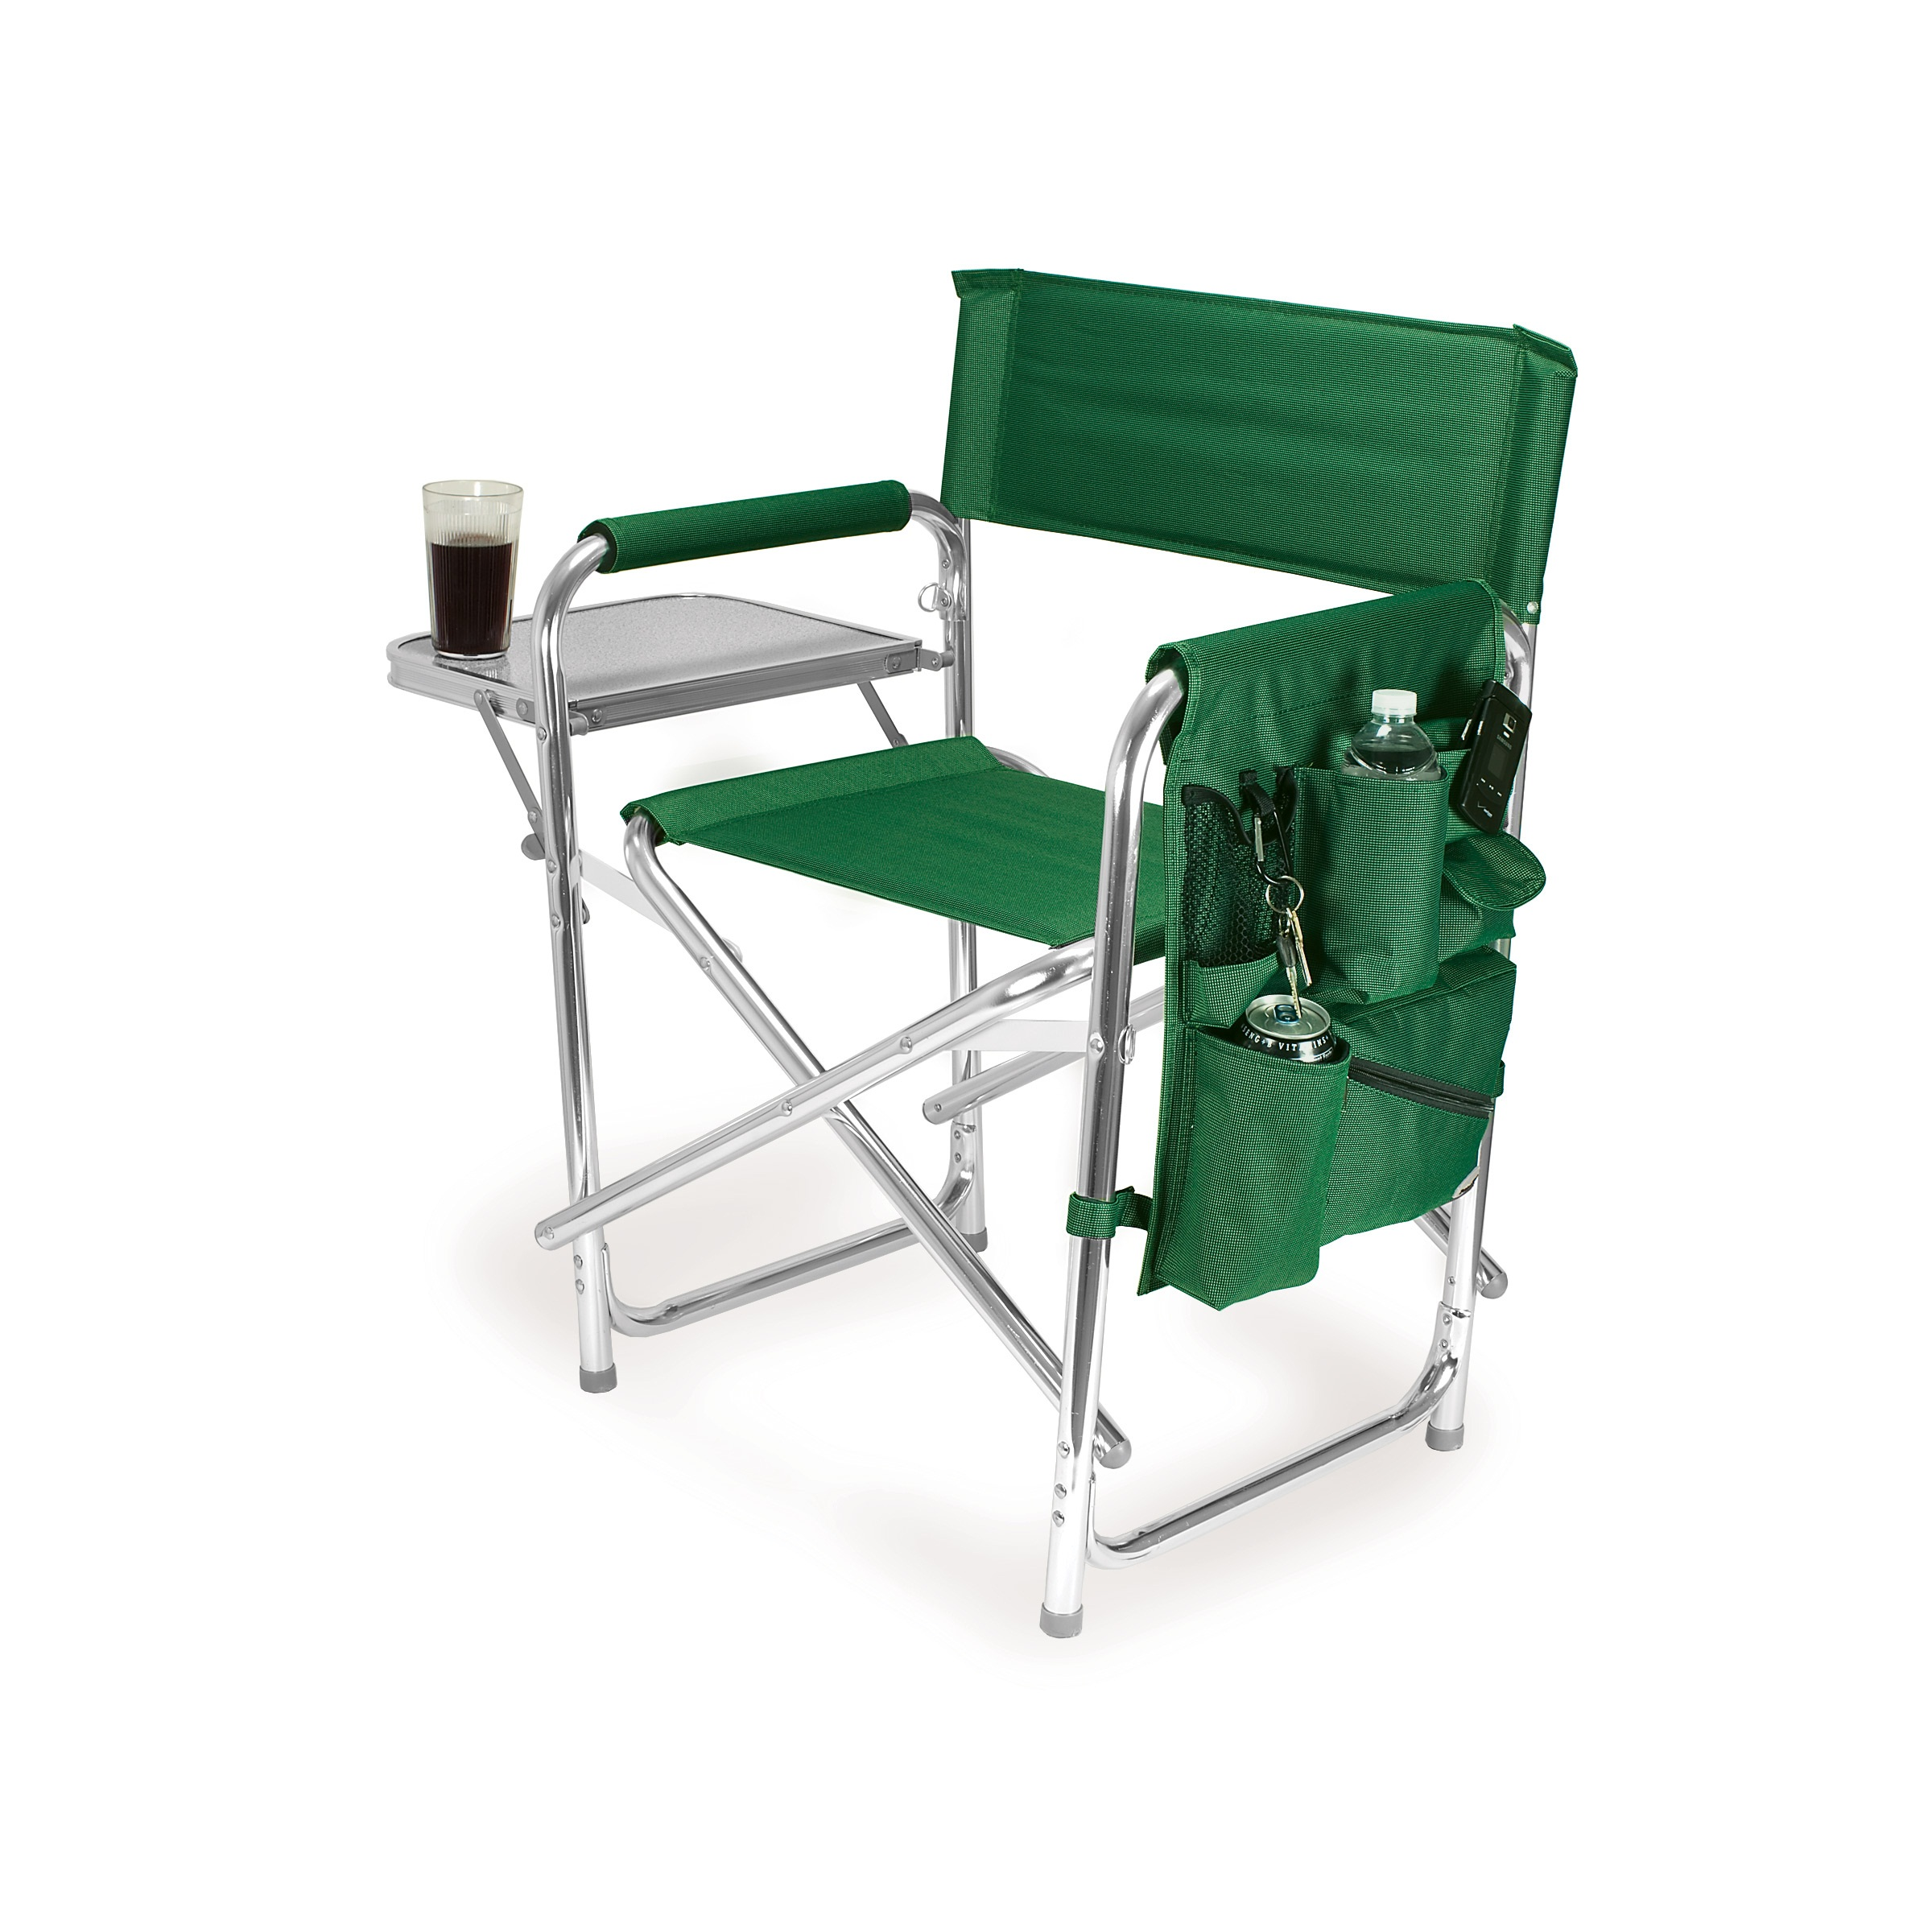 image chairs products product campicious folding camping chair foldable